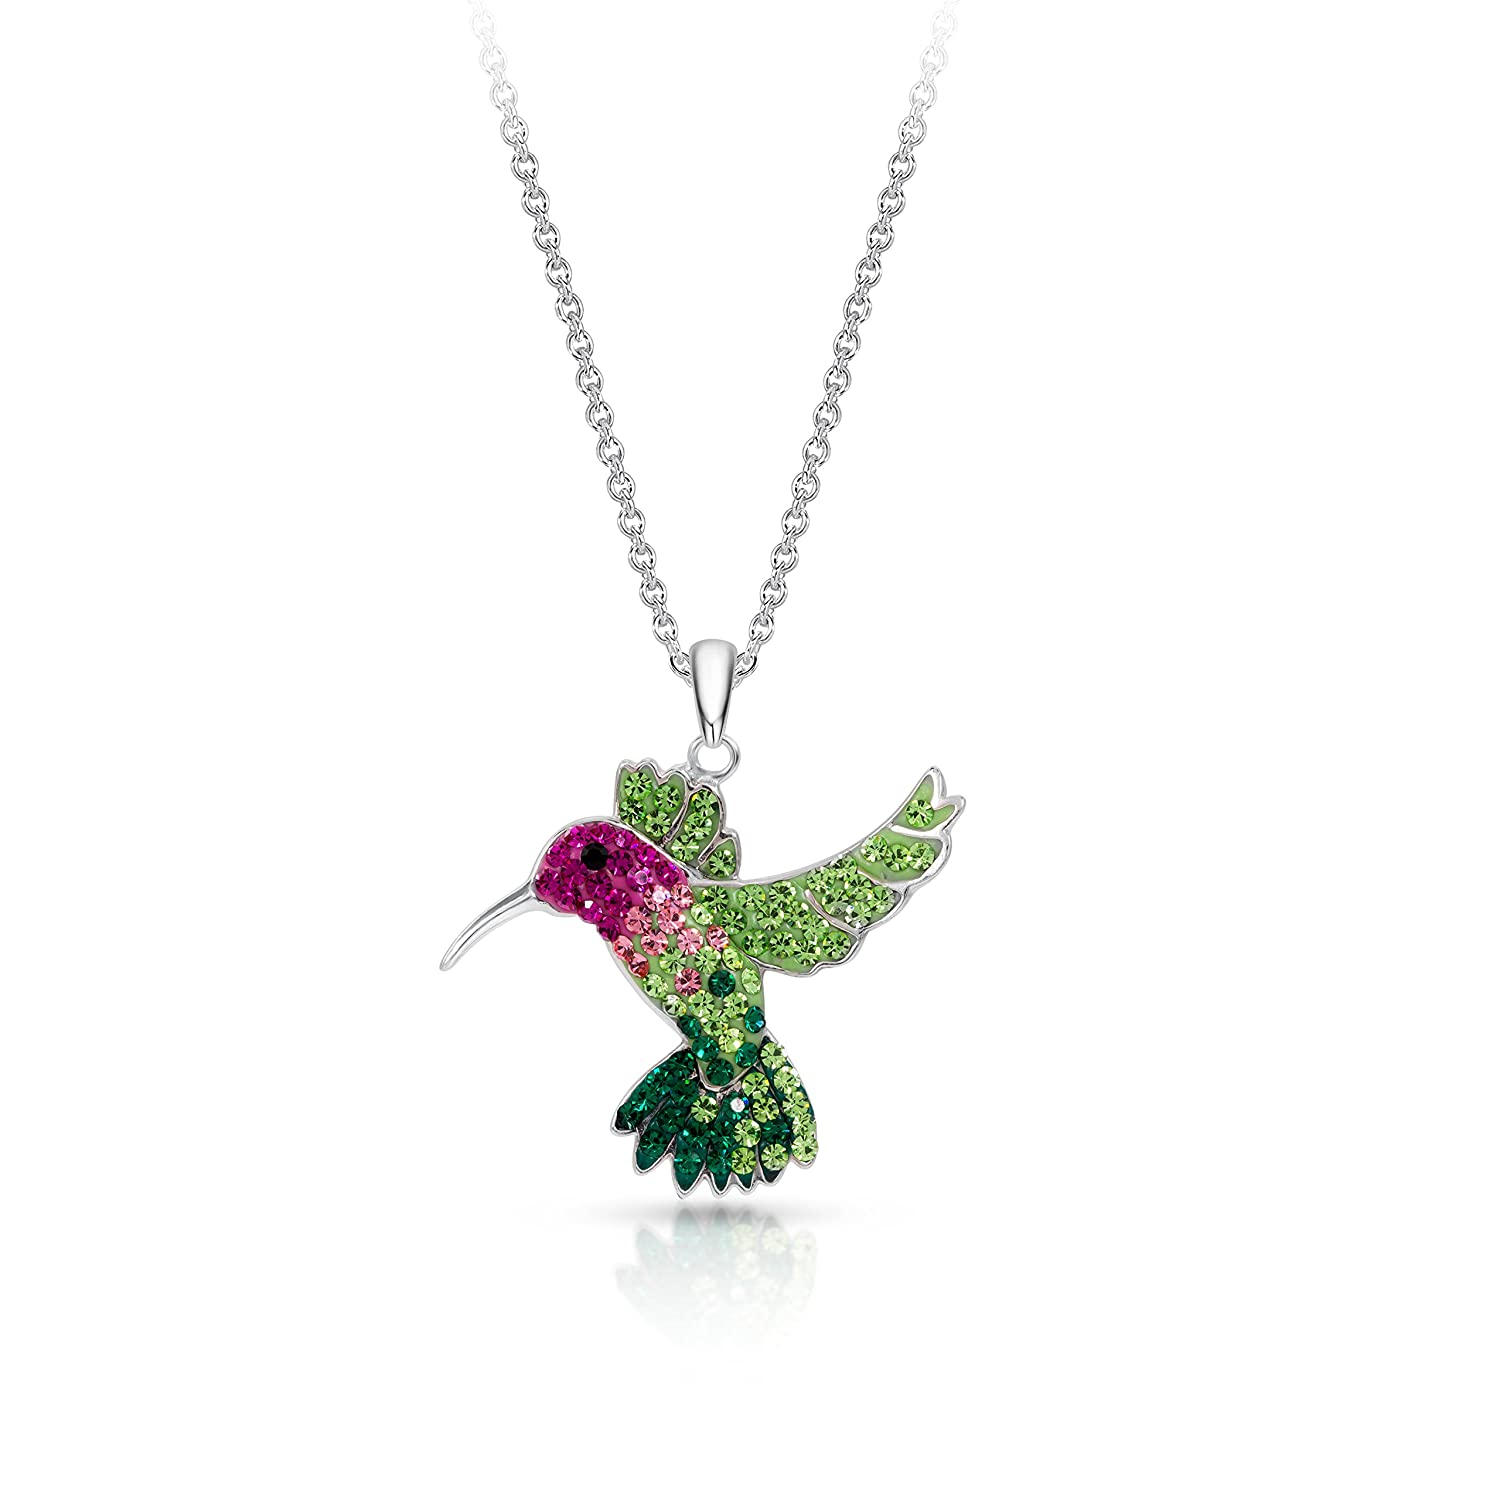 0c43de51e12 Colorful Flying Hummingbird Crystal Pendant Necklace Never Rust 925  Sterling Silver for Women